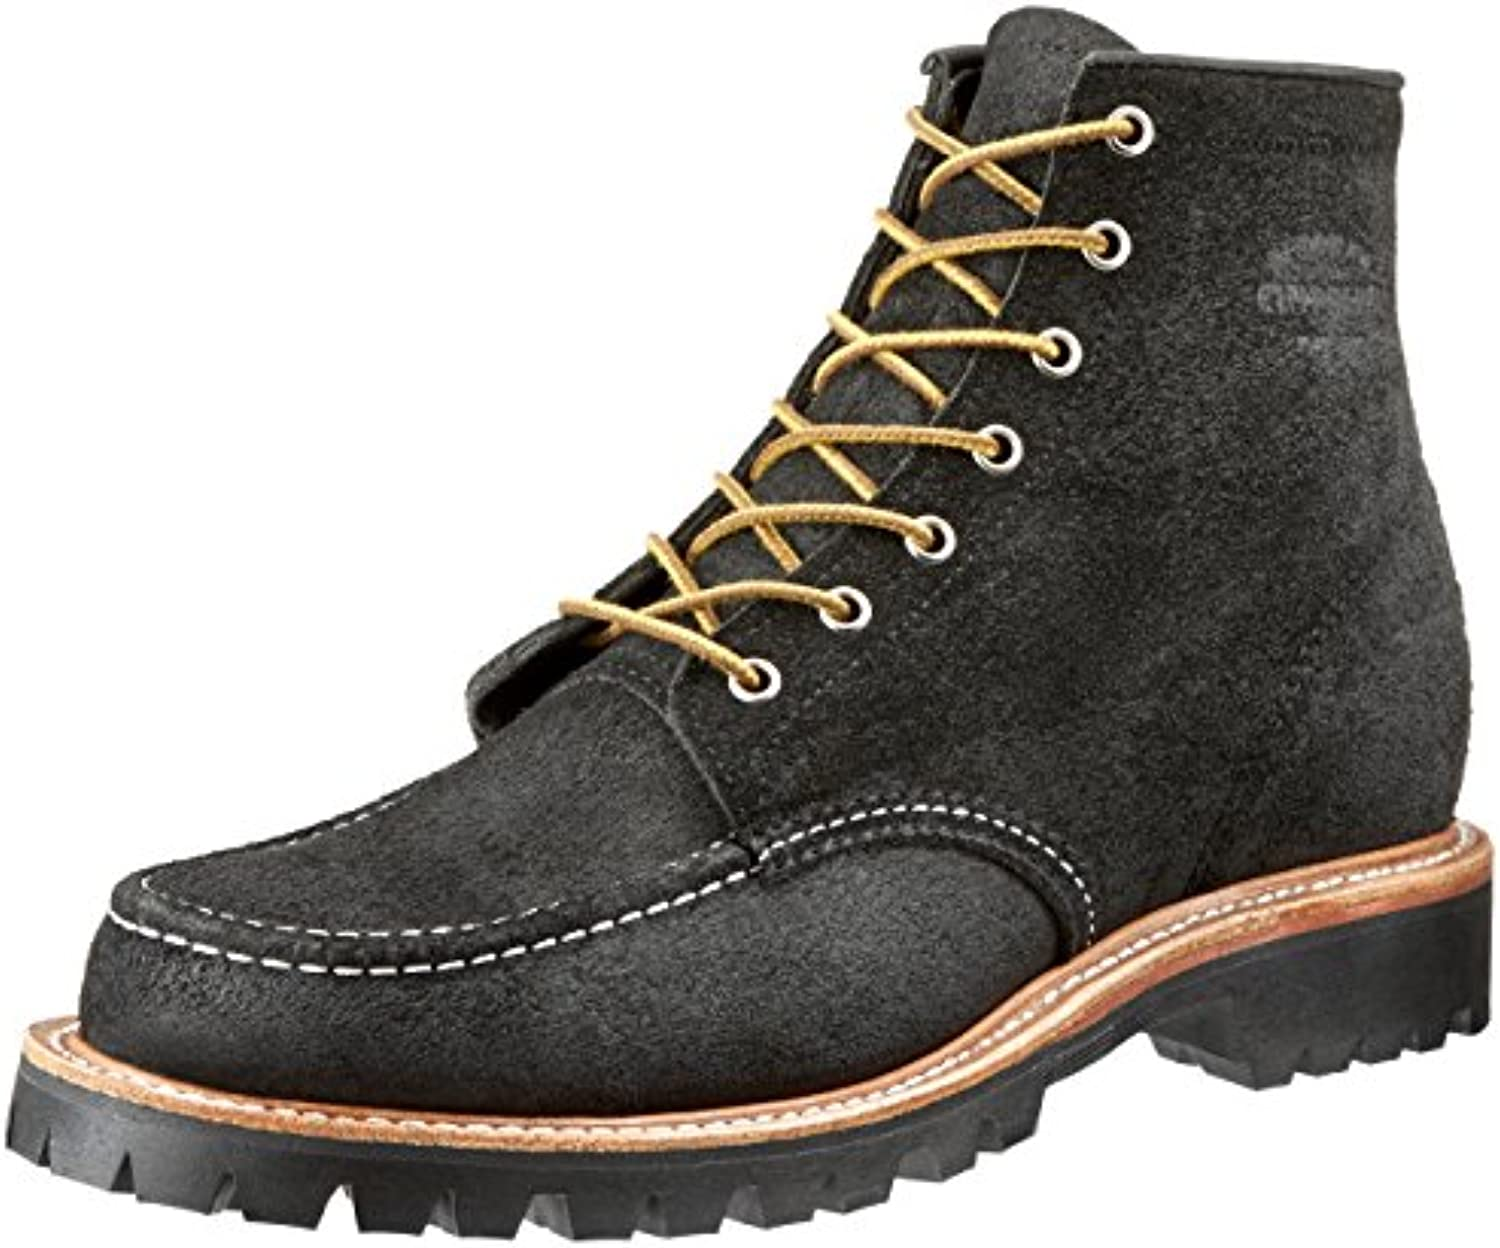 Justin Brands Chippewa 6inch Shipton Black Mountaineer MOCC Toe Boots   US 8 (E)